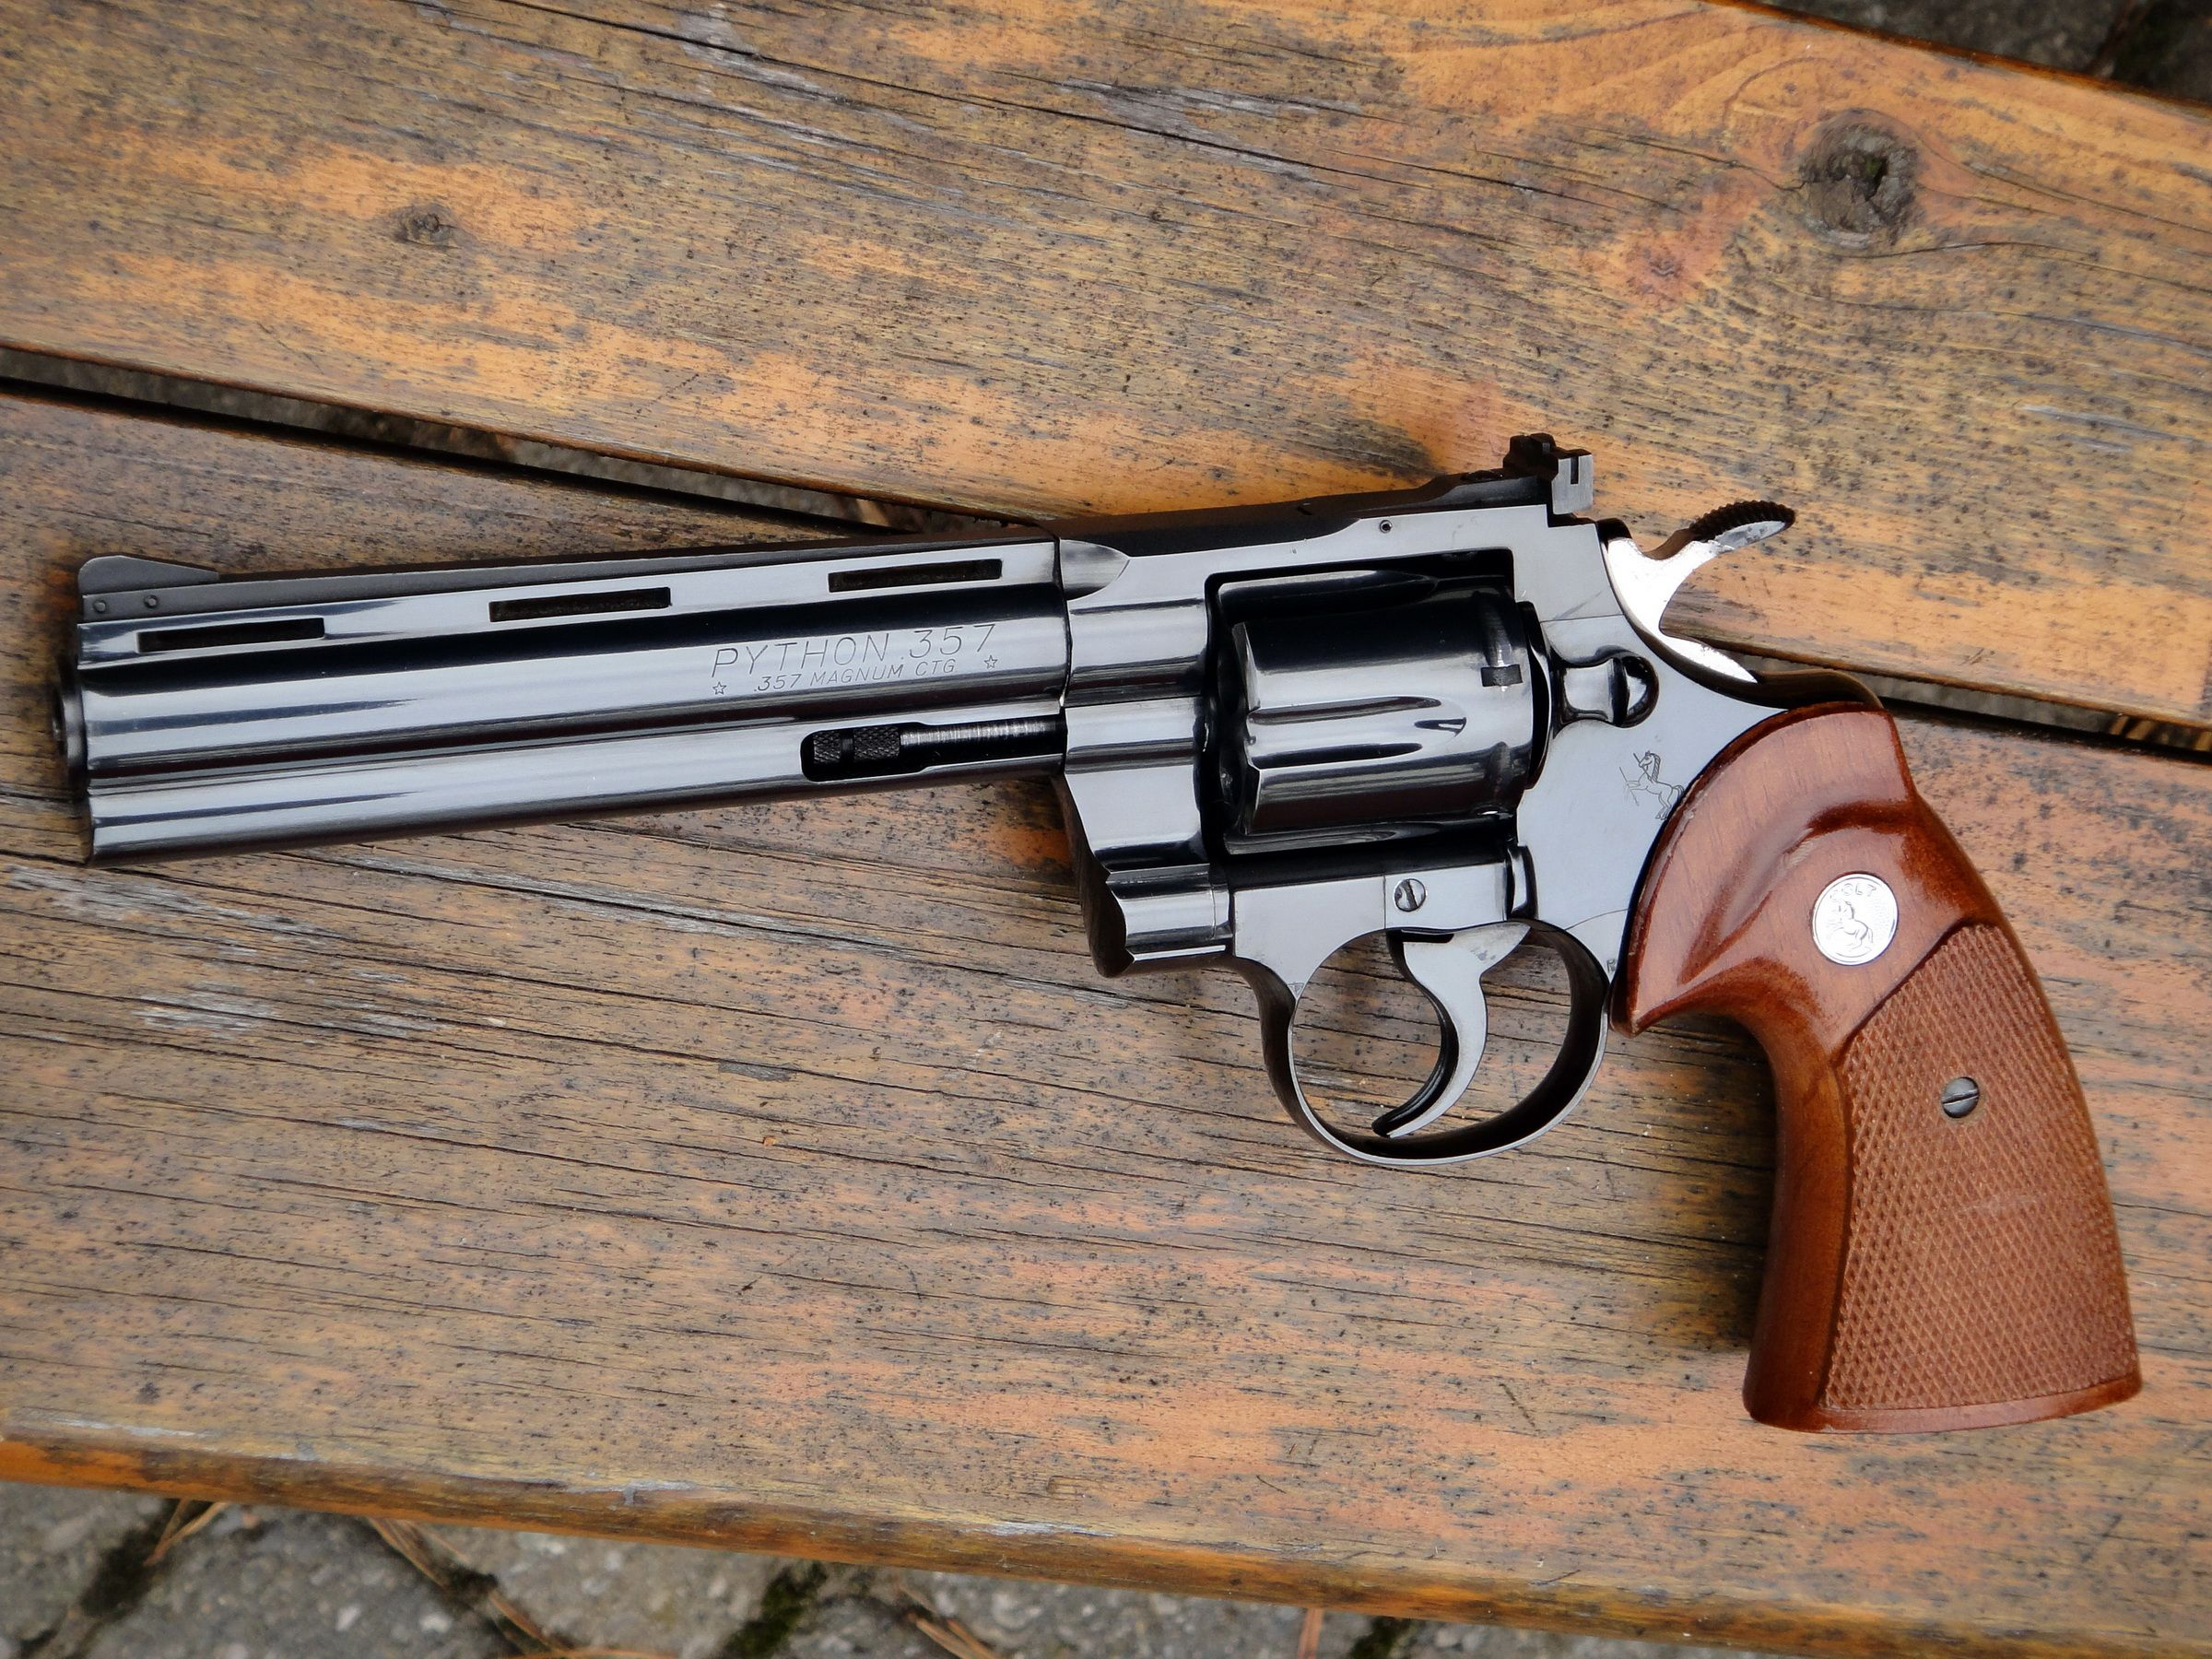 Colt Python  6 inch barrel   this would be the ultimate